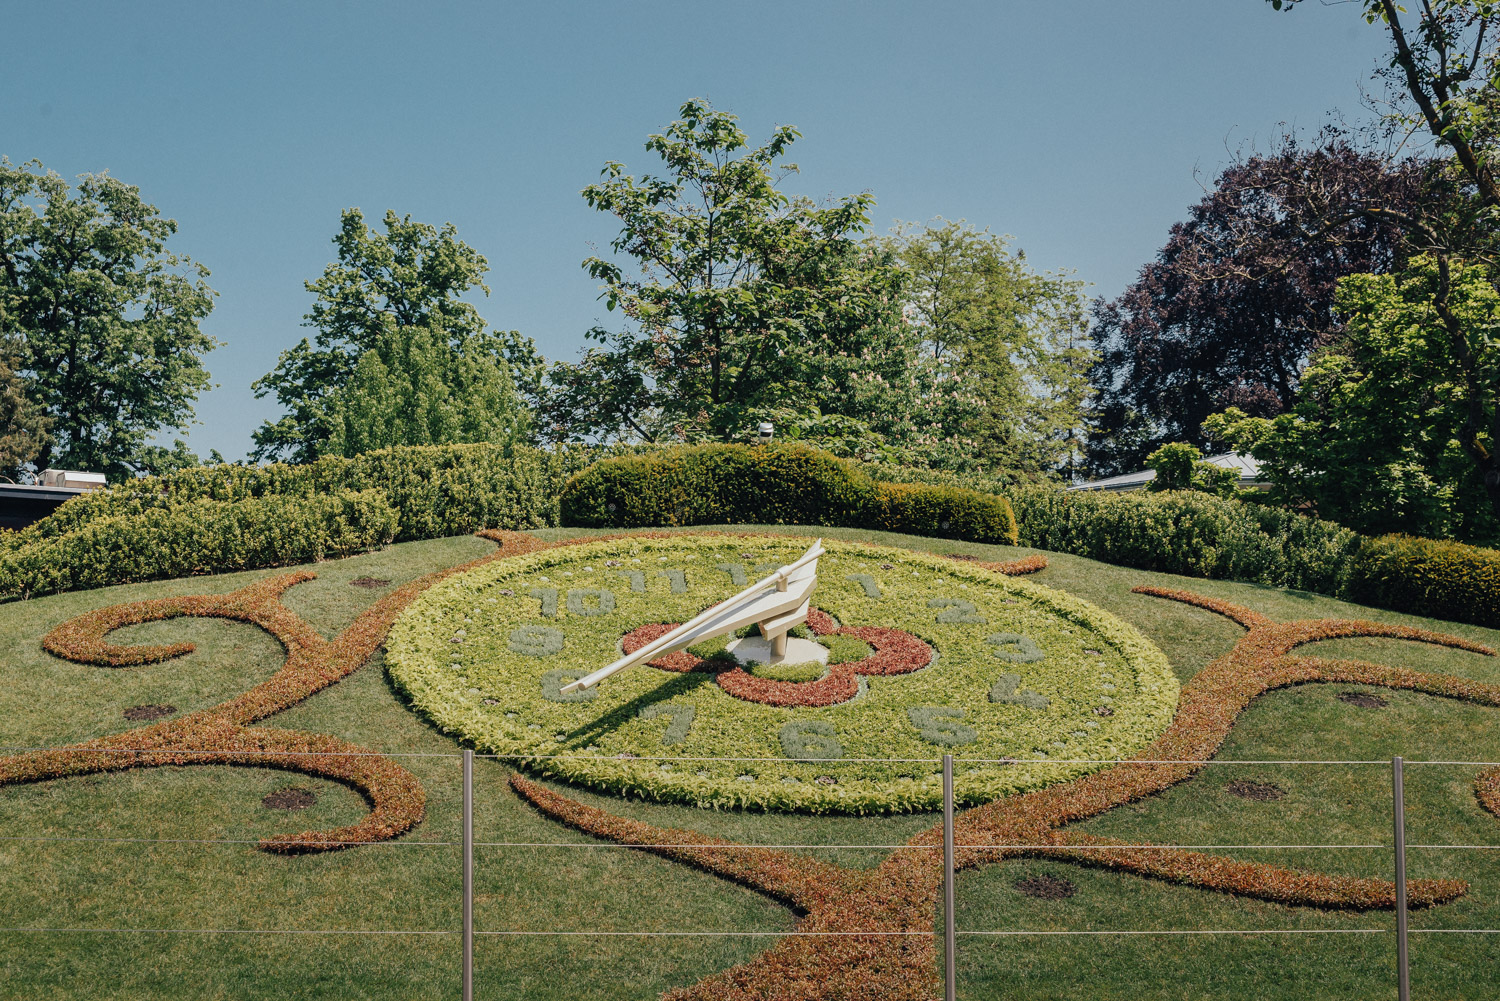 The Flower Clock in Geneva